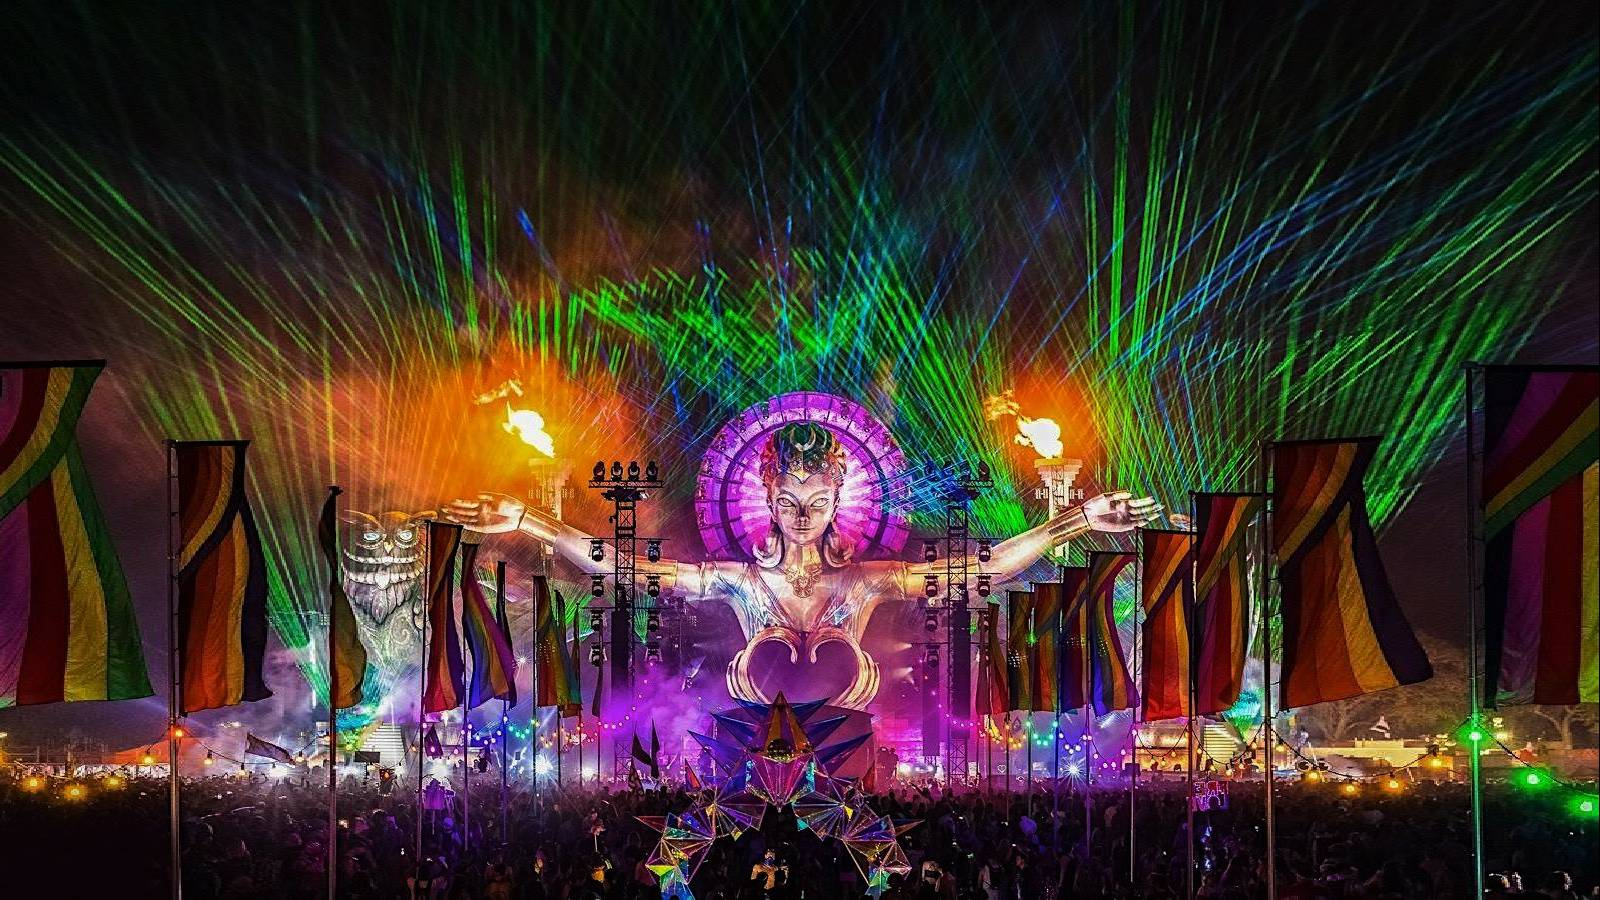 2020 Electric Daisy Carnival - 3 Day Pass (5/15 - 5/17) (18+ Event)